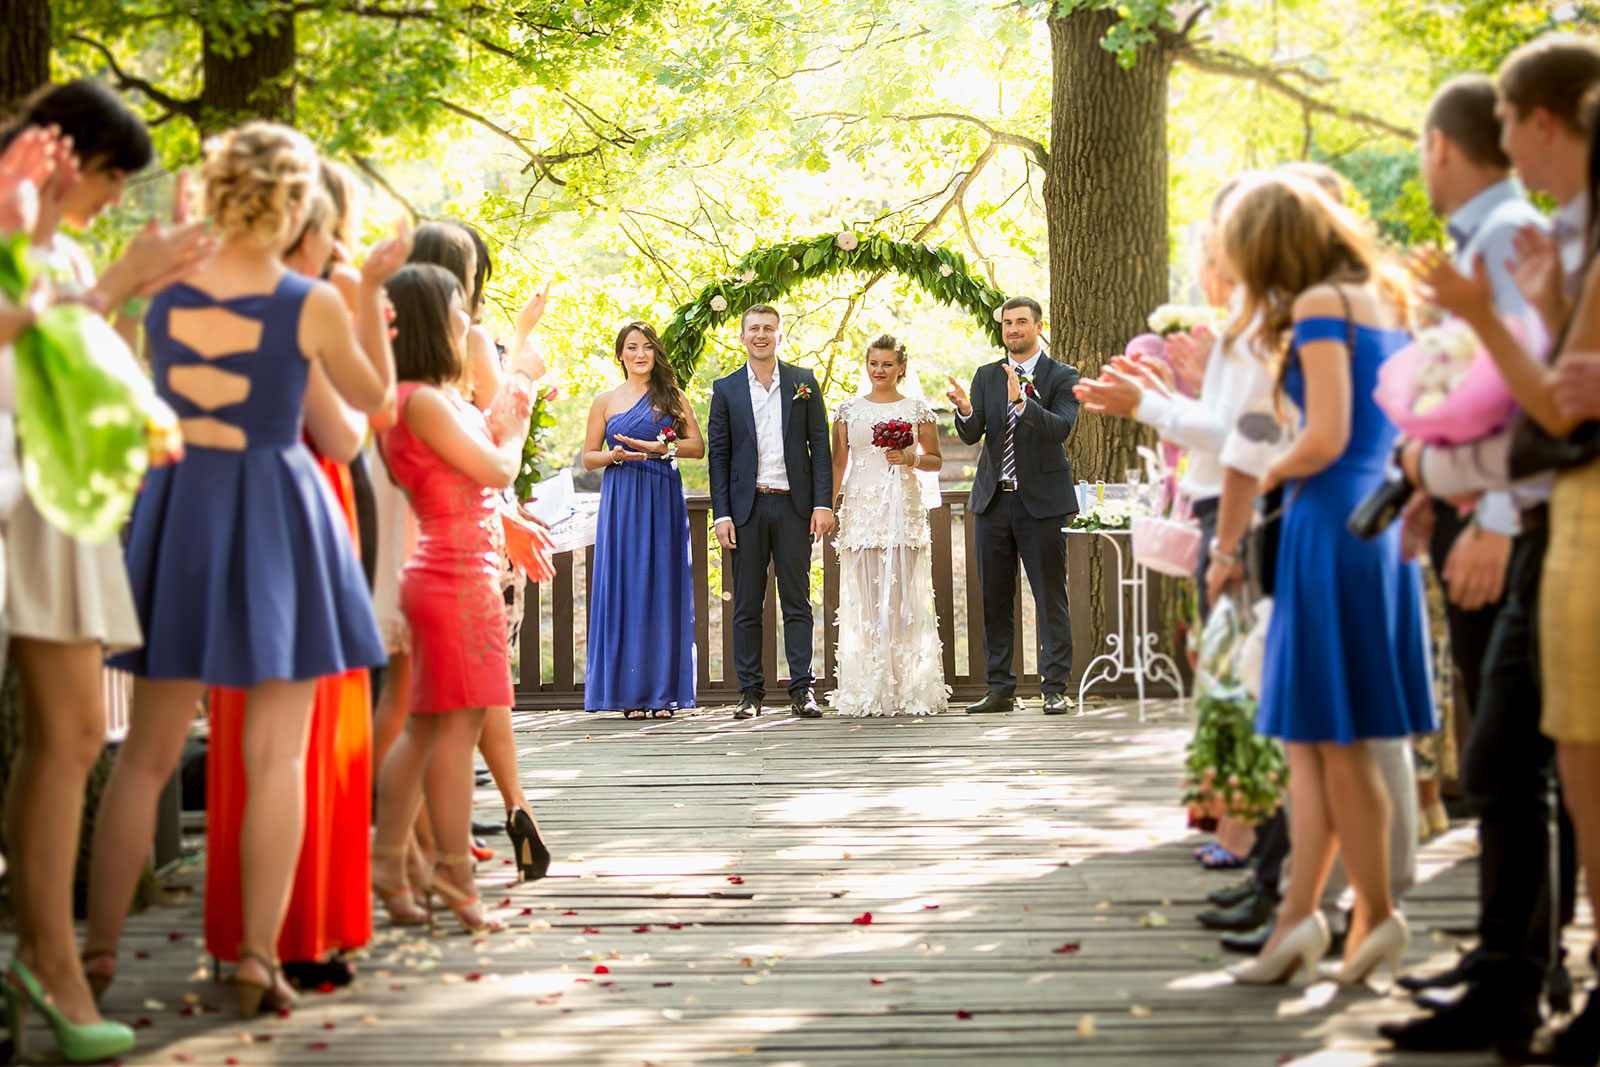 guests-at-outdoor-wedding